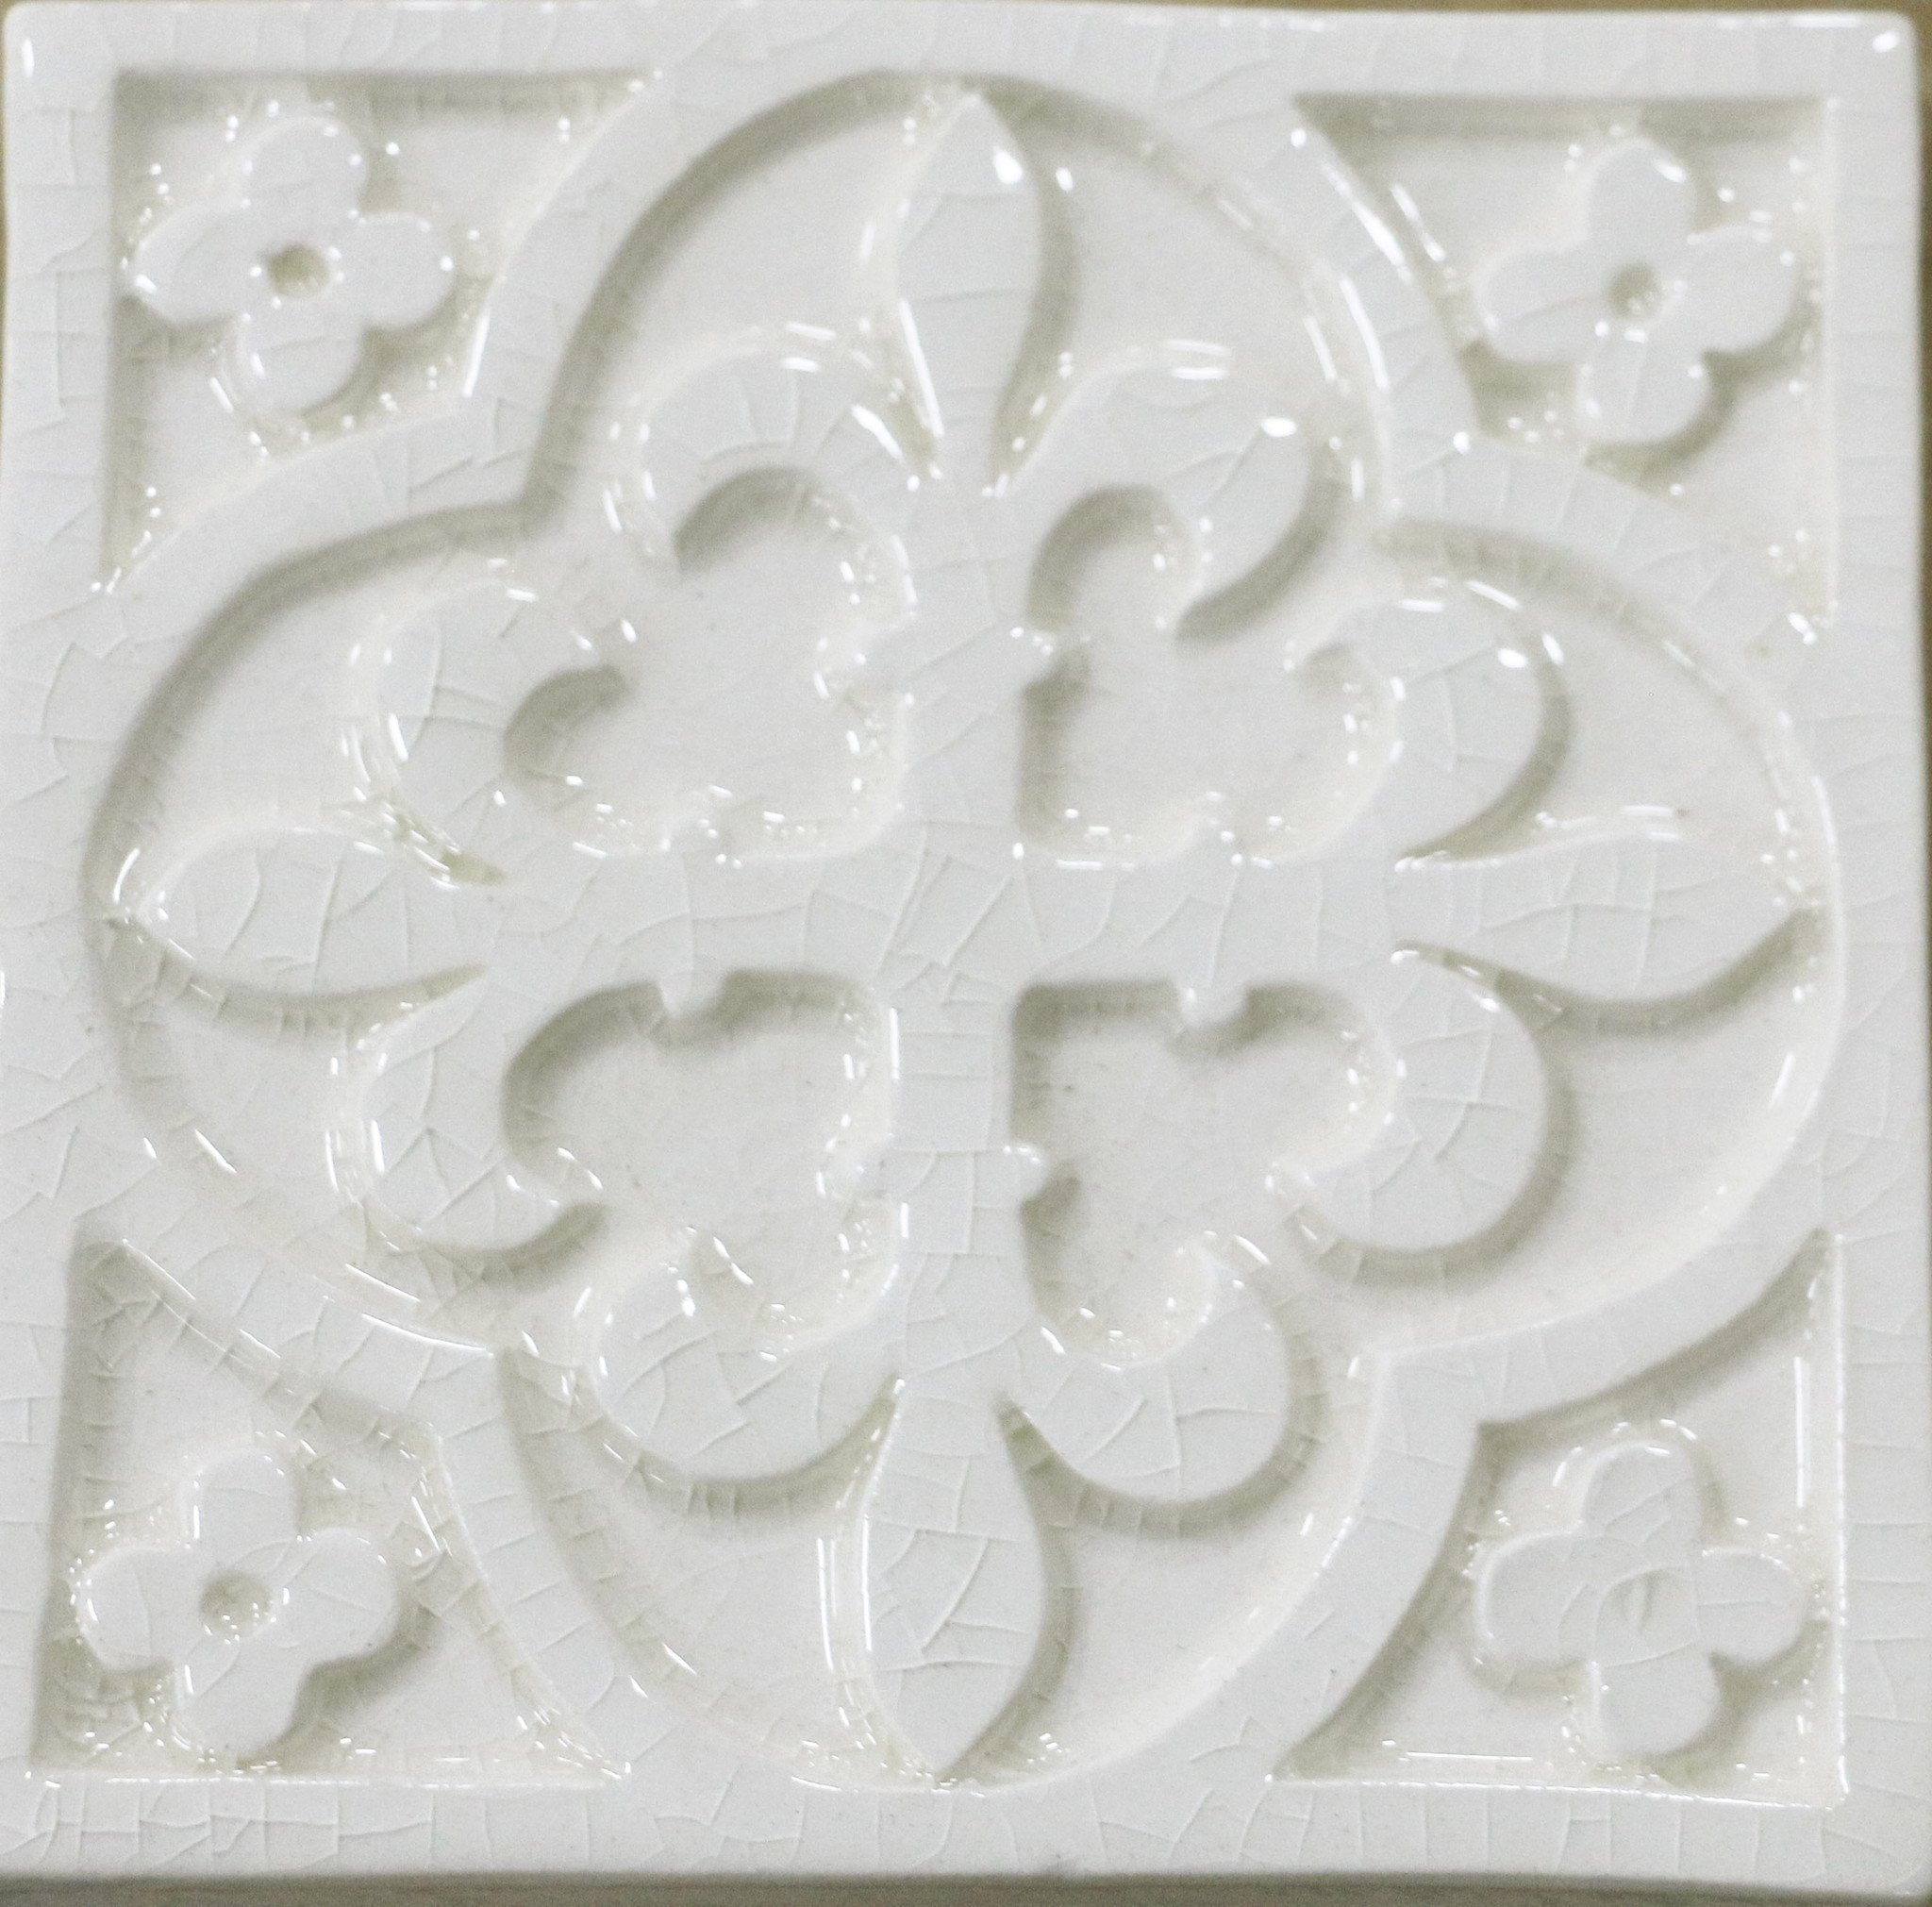 Waterworks Archive Decorative Field Tile 4 x 4 in Off White Glossy Crackle